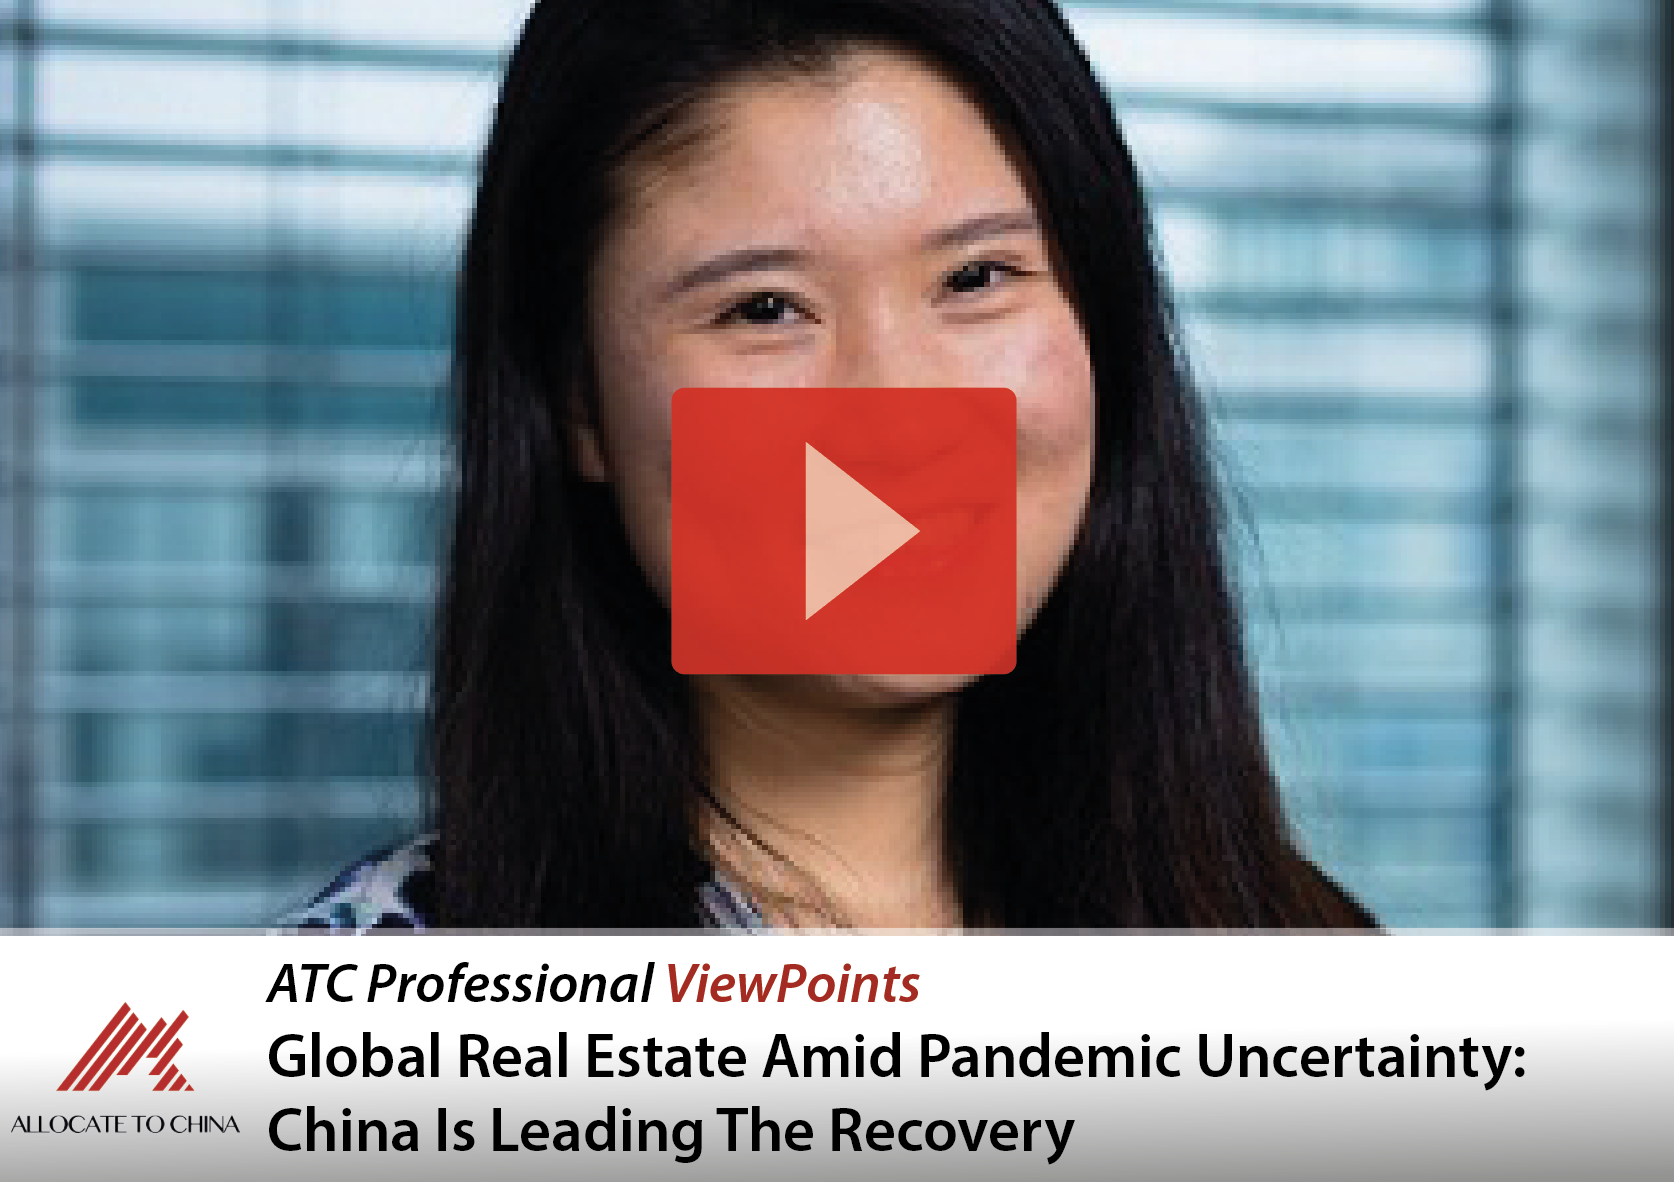 Global real estate amid pandemic uncertainty: China is leading the recovery